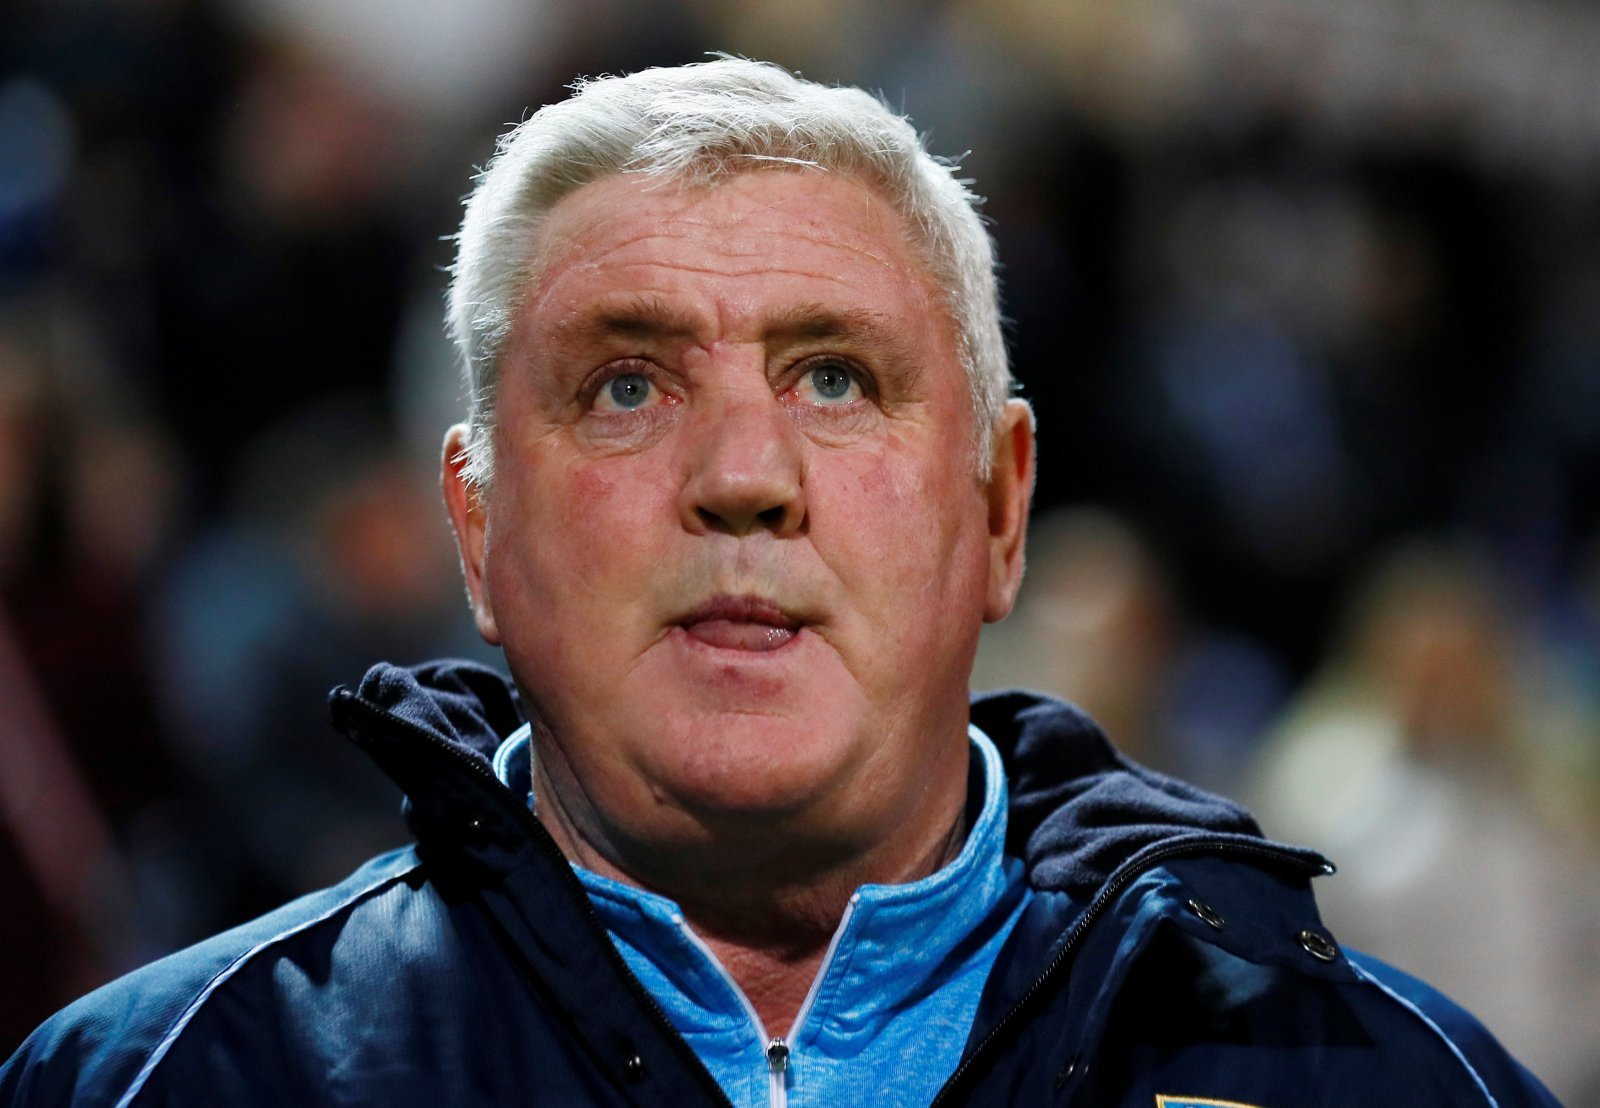 Sheffield Wednesday: Quality over quantity for Steve Bruce